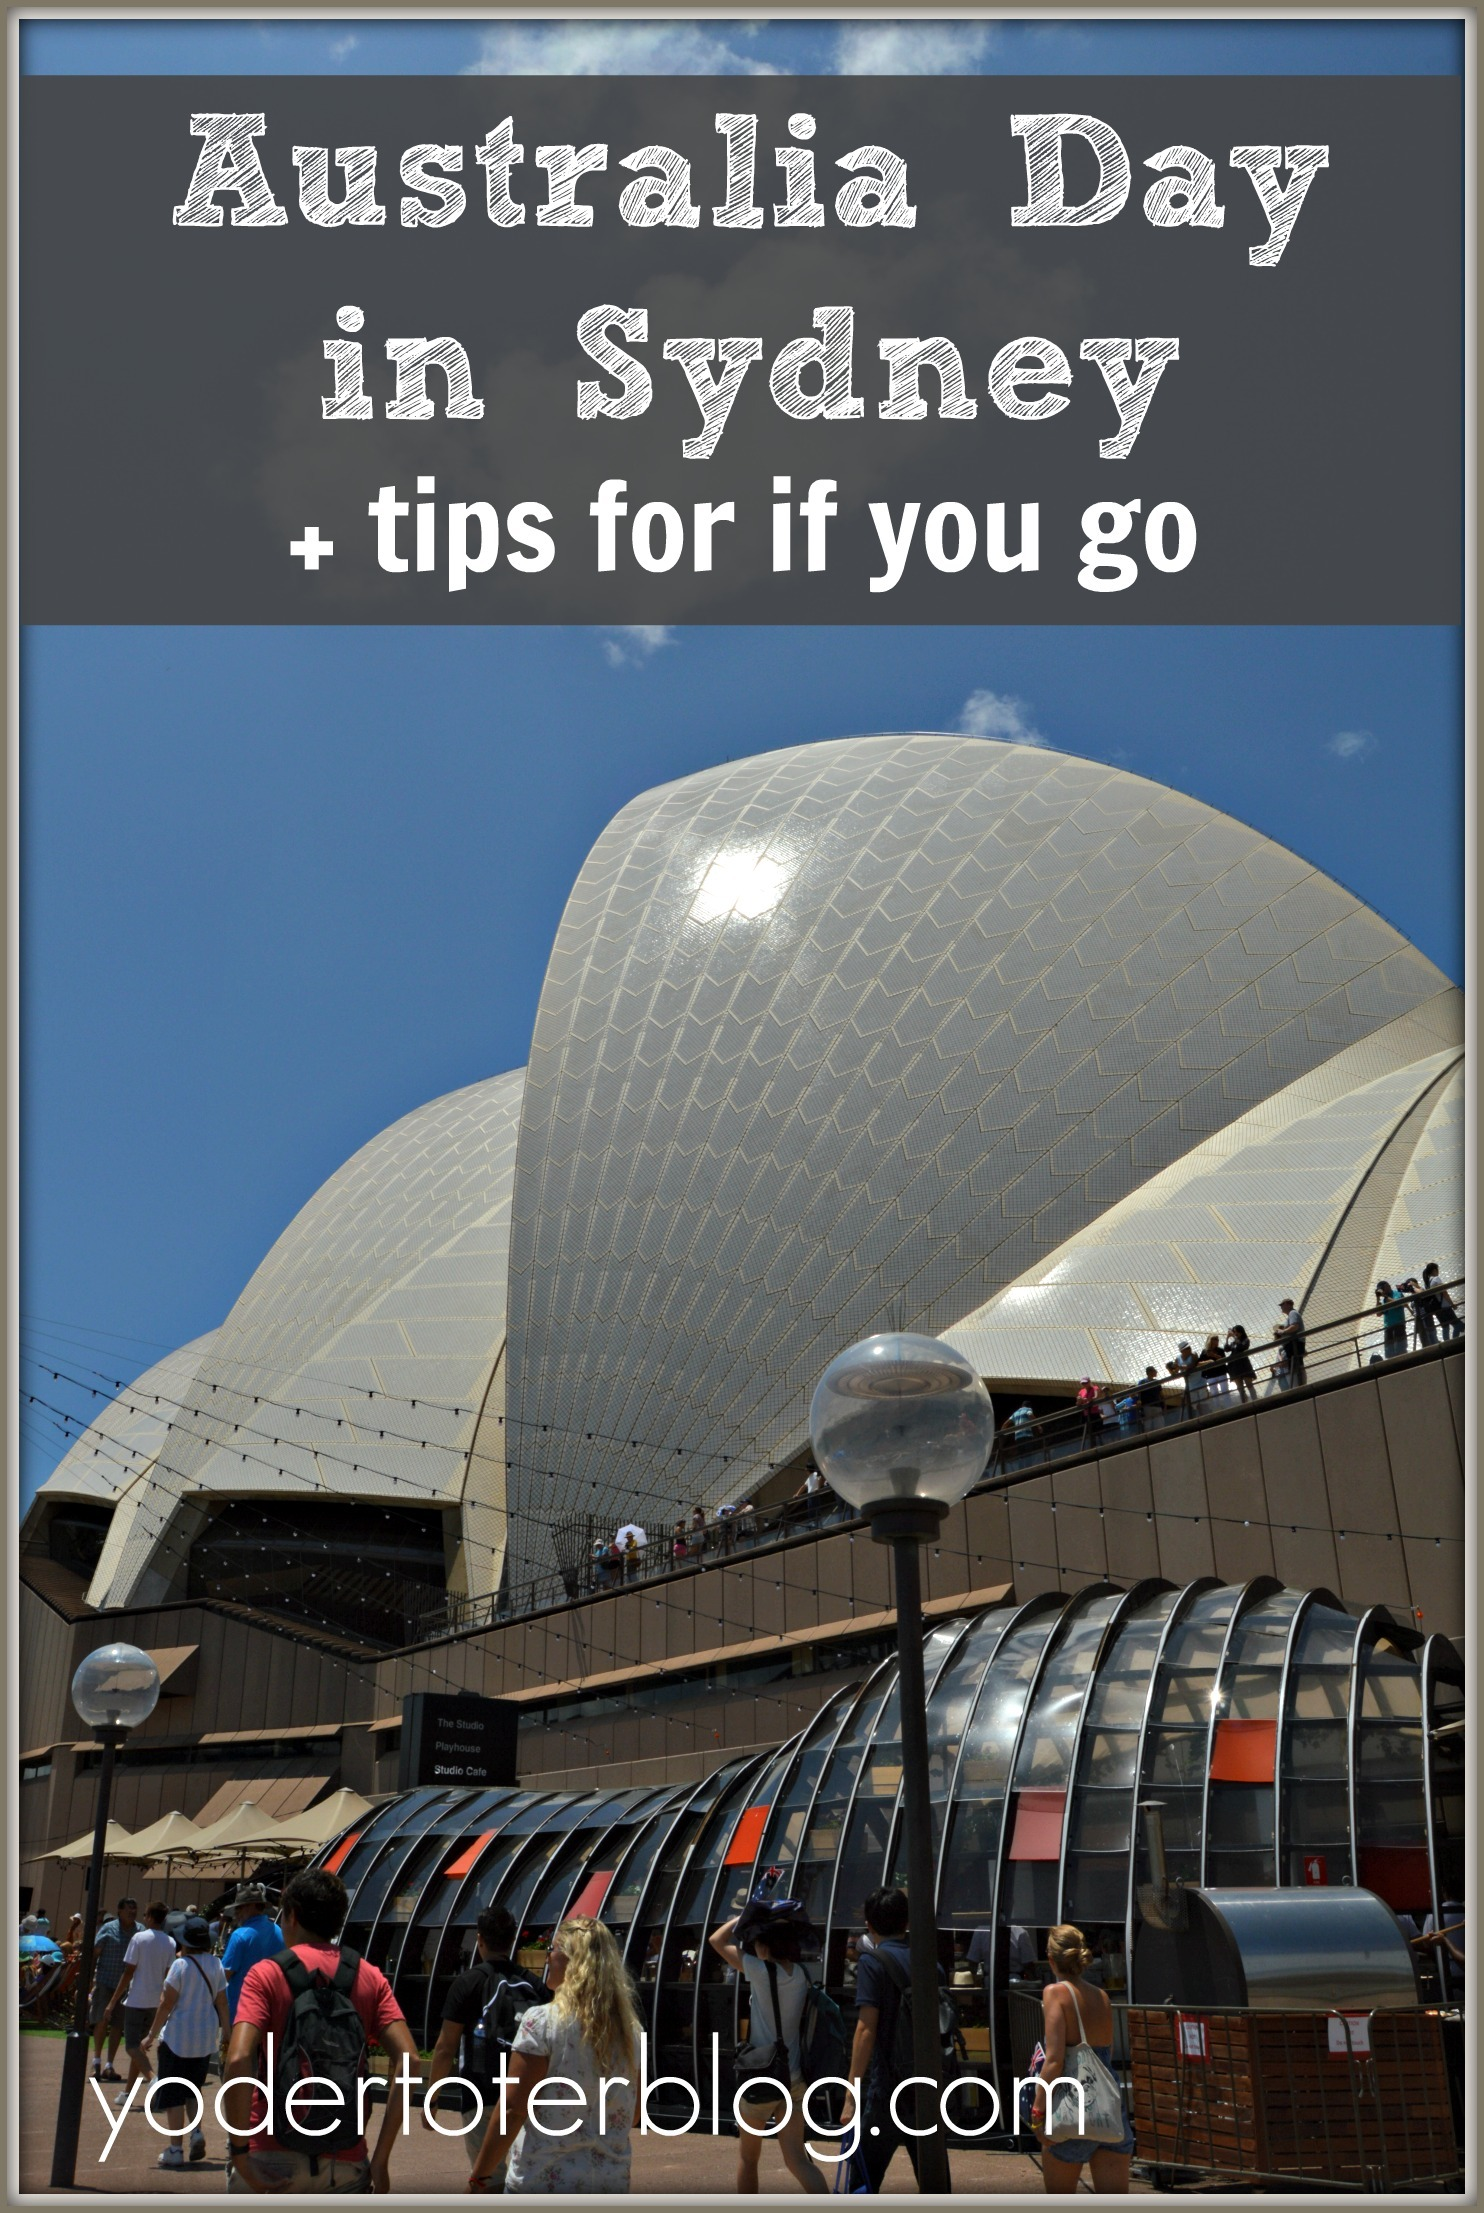 Australia Day in Sydney.  Tips for if you go!  Traveling with small children to Australia Day.